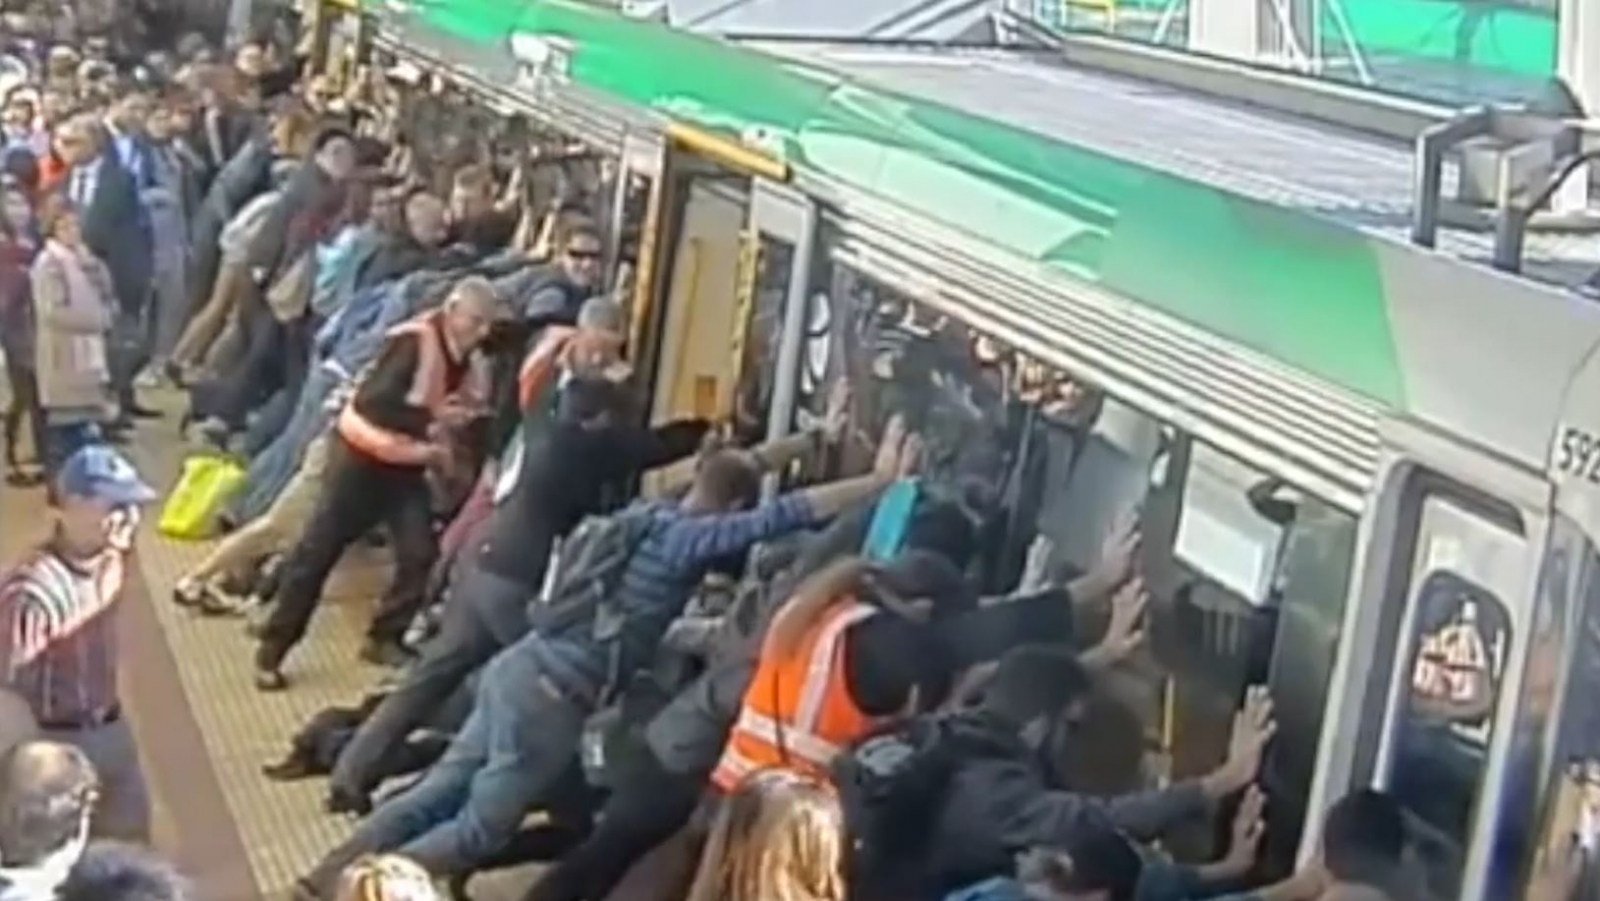 Crowd Pushes Train to Free Trapped Man